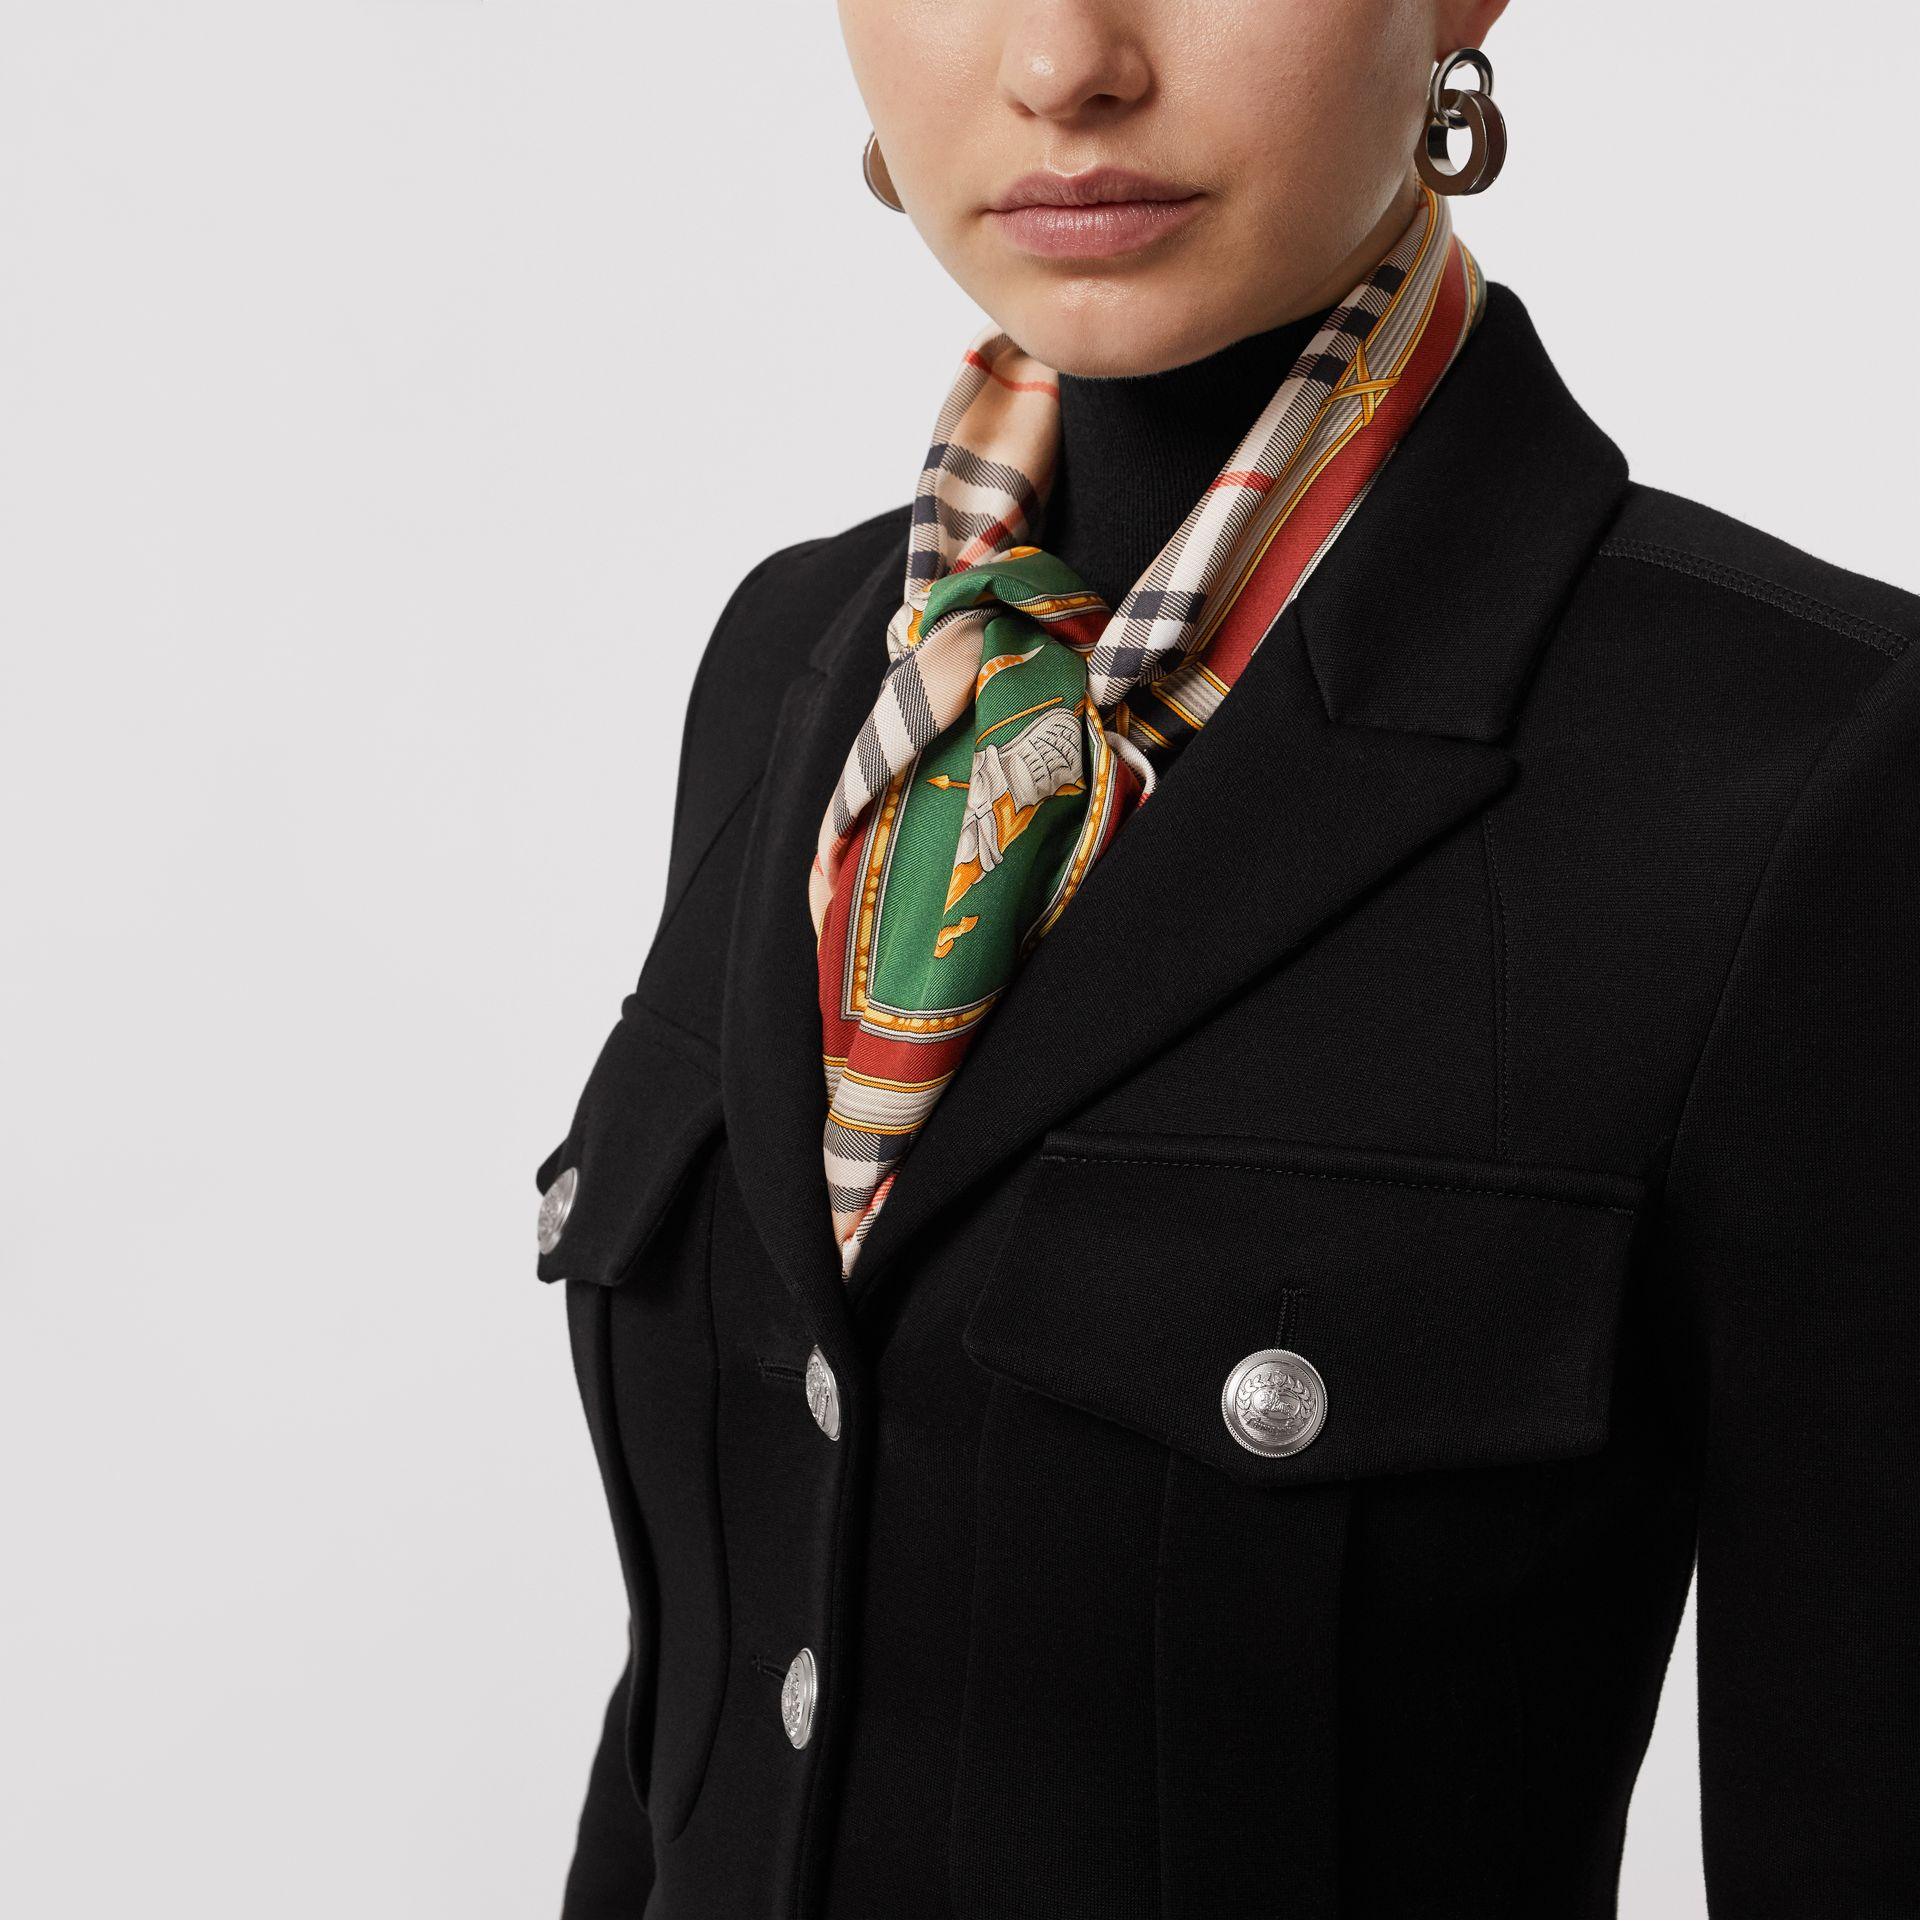 Bonded Cotton Blend Jersey Tailored Coat in Black - Women | Burberry - gallery image 4